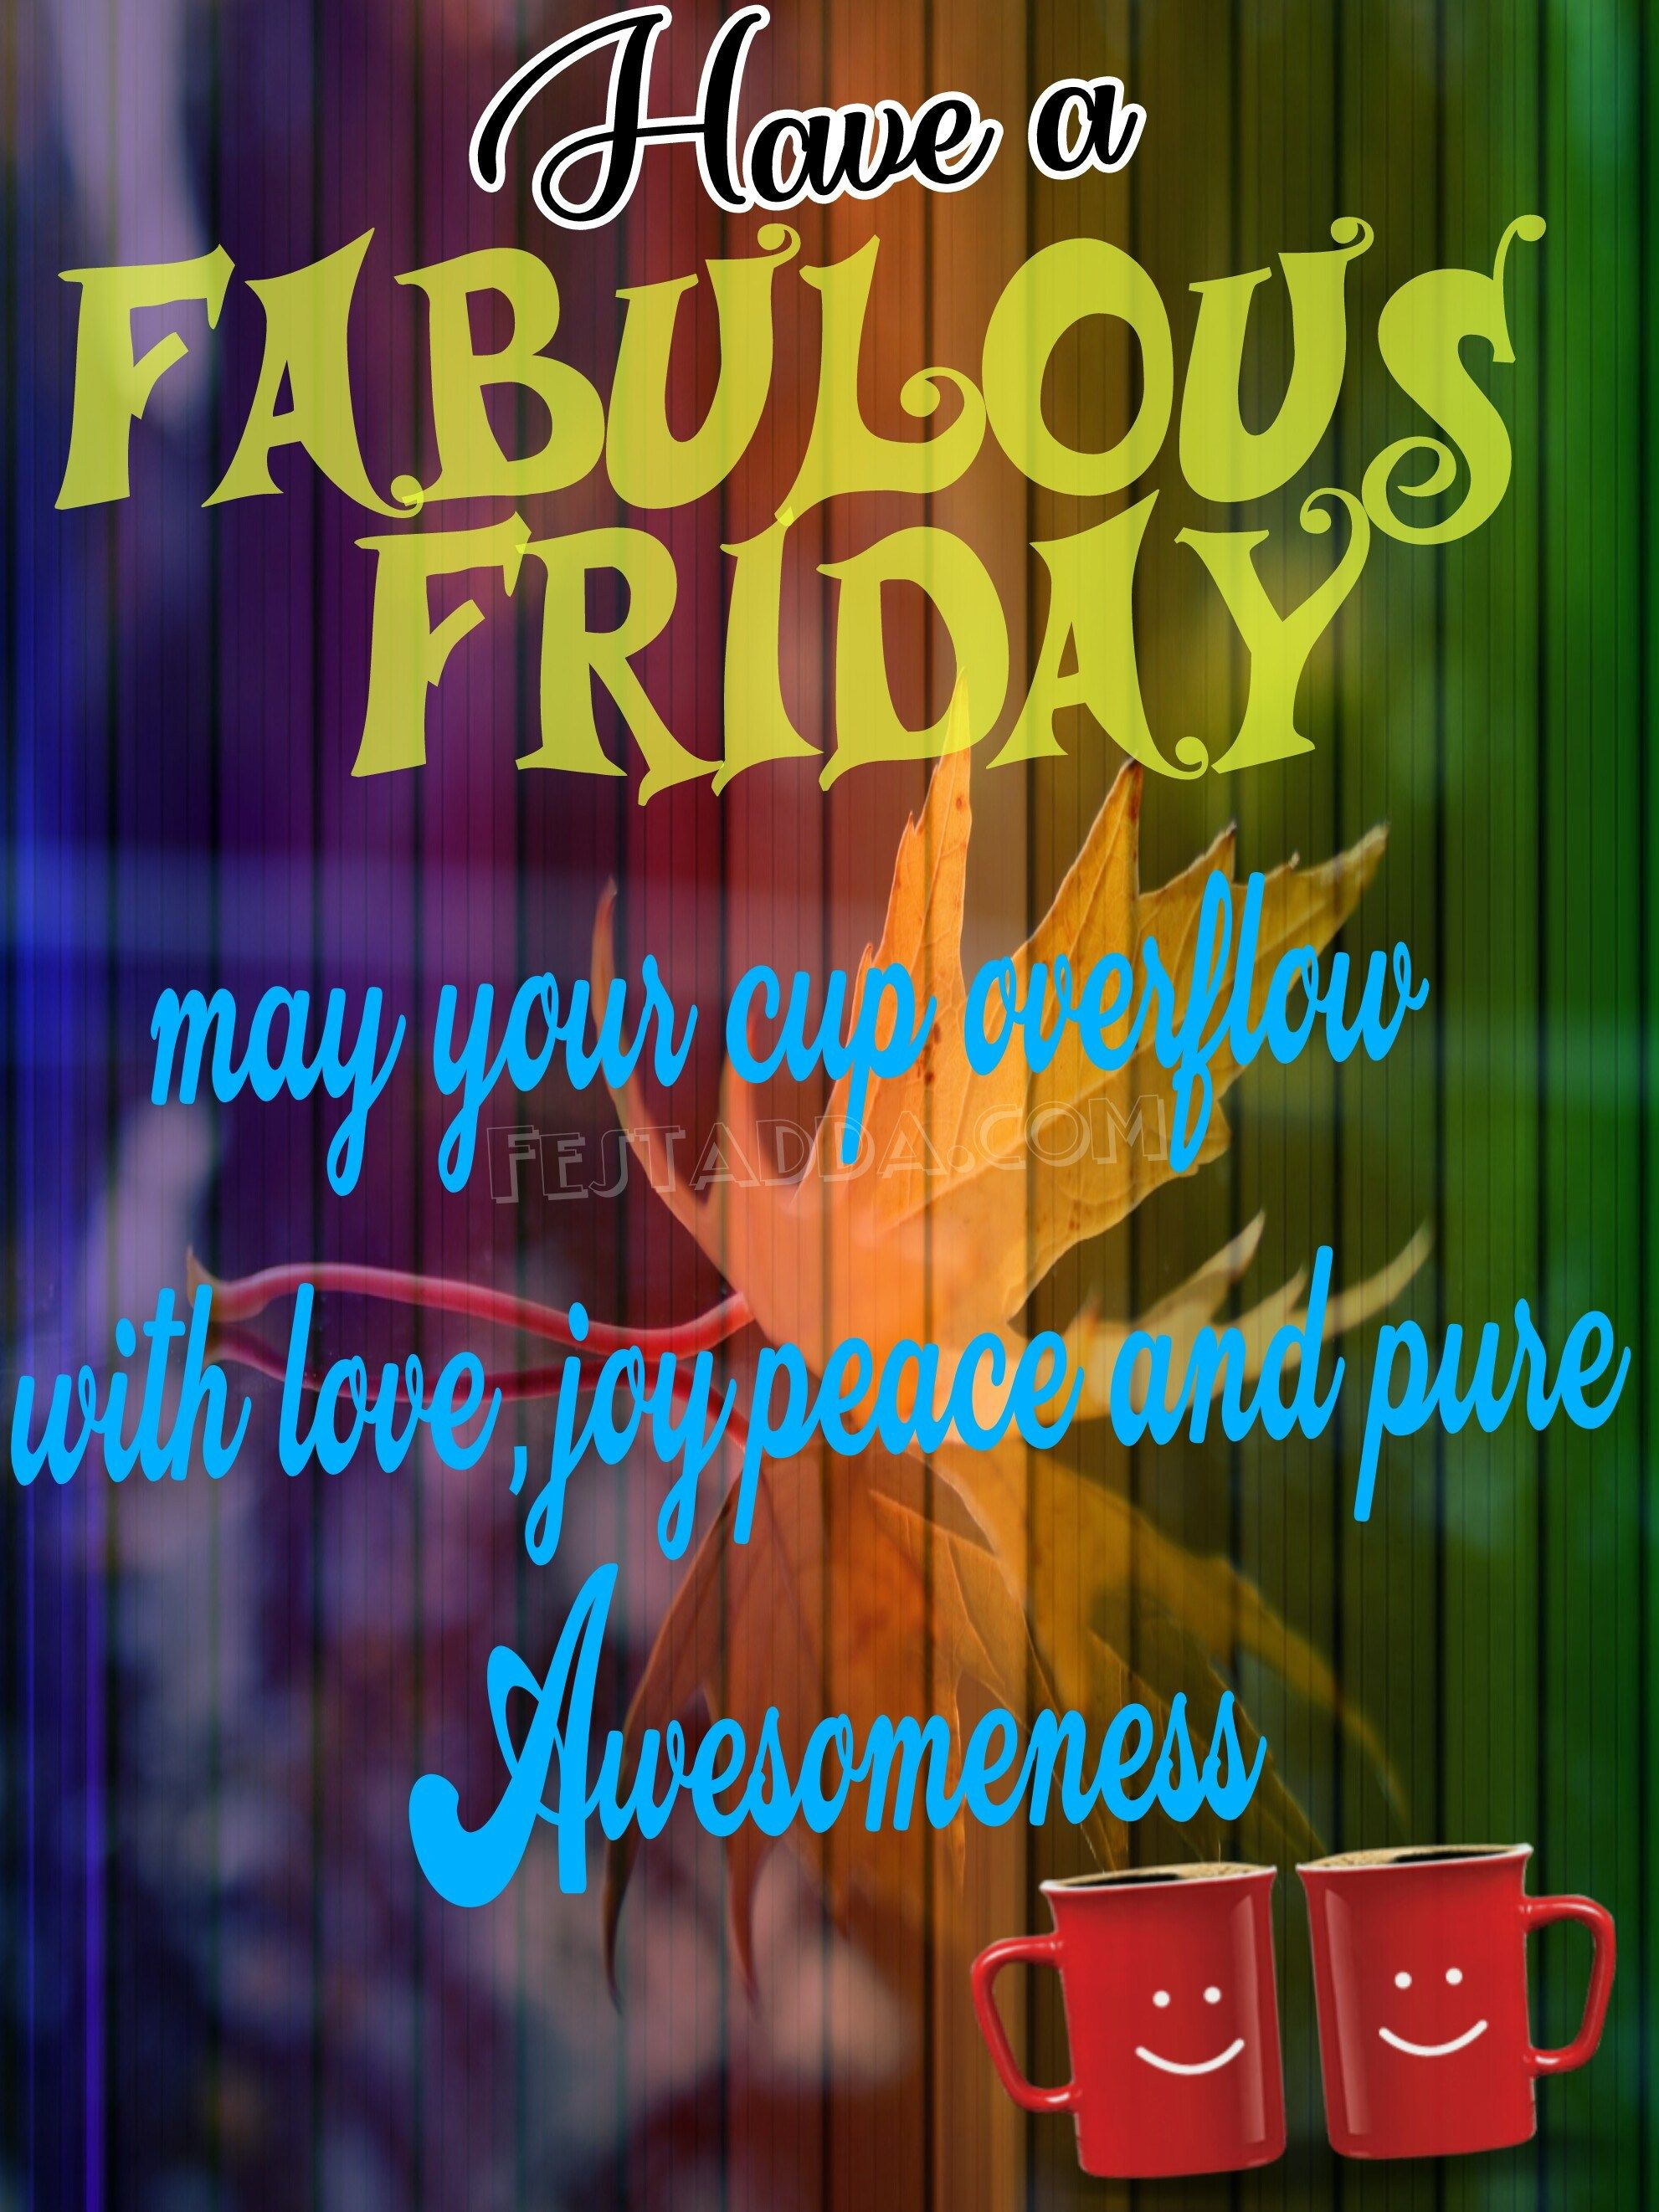 Good Morning Friday Pictures Good Morning Friday Pictures Friday Quotes Funny Good Morning Friday